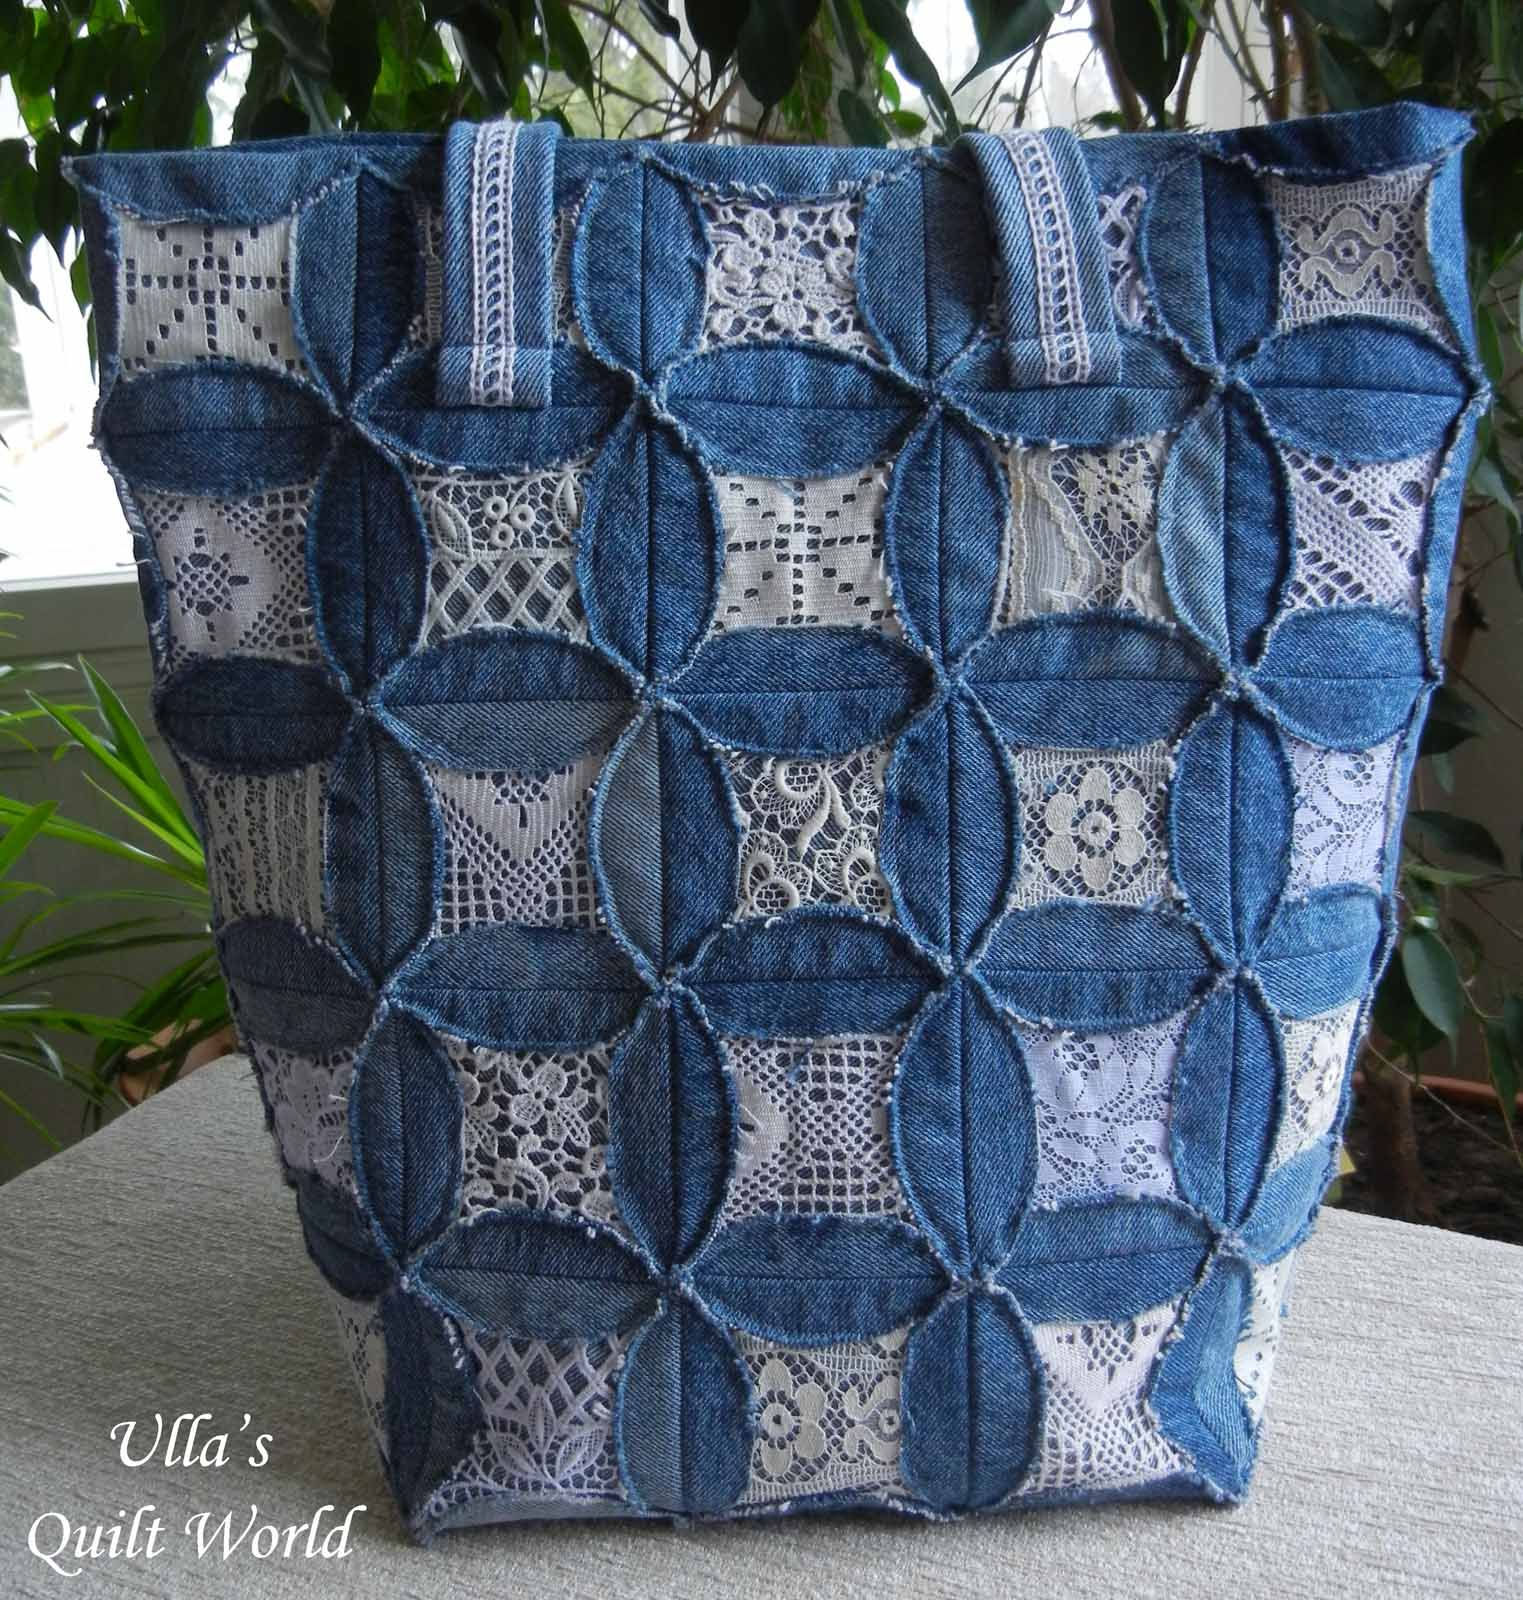 Denim And Lace Cathedral Window Bag I Want To Use The Design For A Wall Hanging Denim Quilt Quilted Bag Denim And Lace